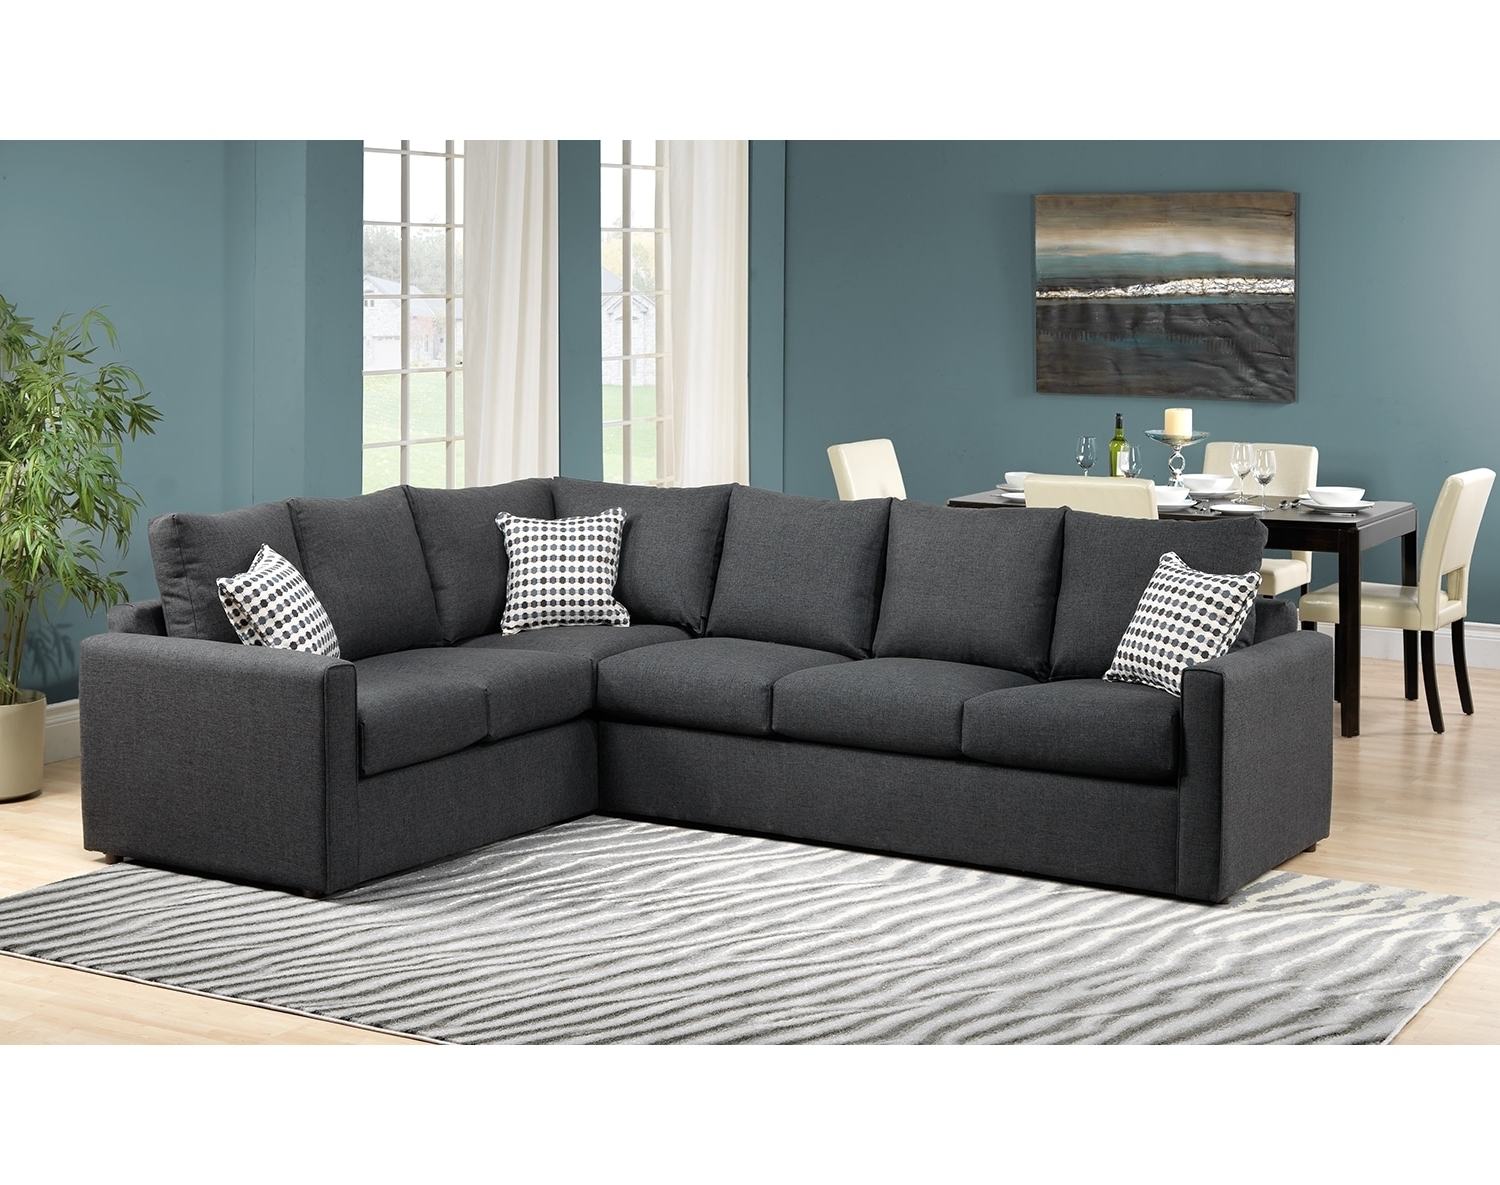 2018 Sectional Sofas At Brampton Regarding Athina 2 Piece Sectional With Left Facing Queen Sofa Bed (View 12 of 20)